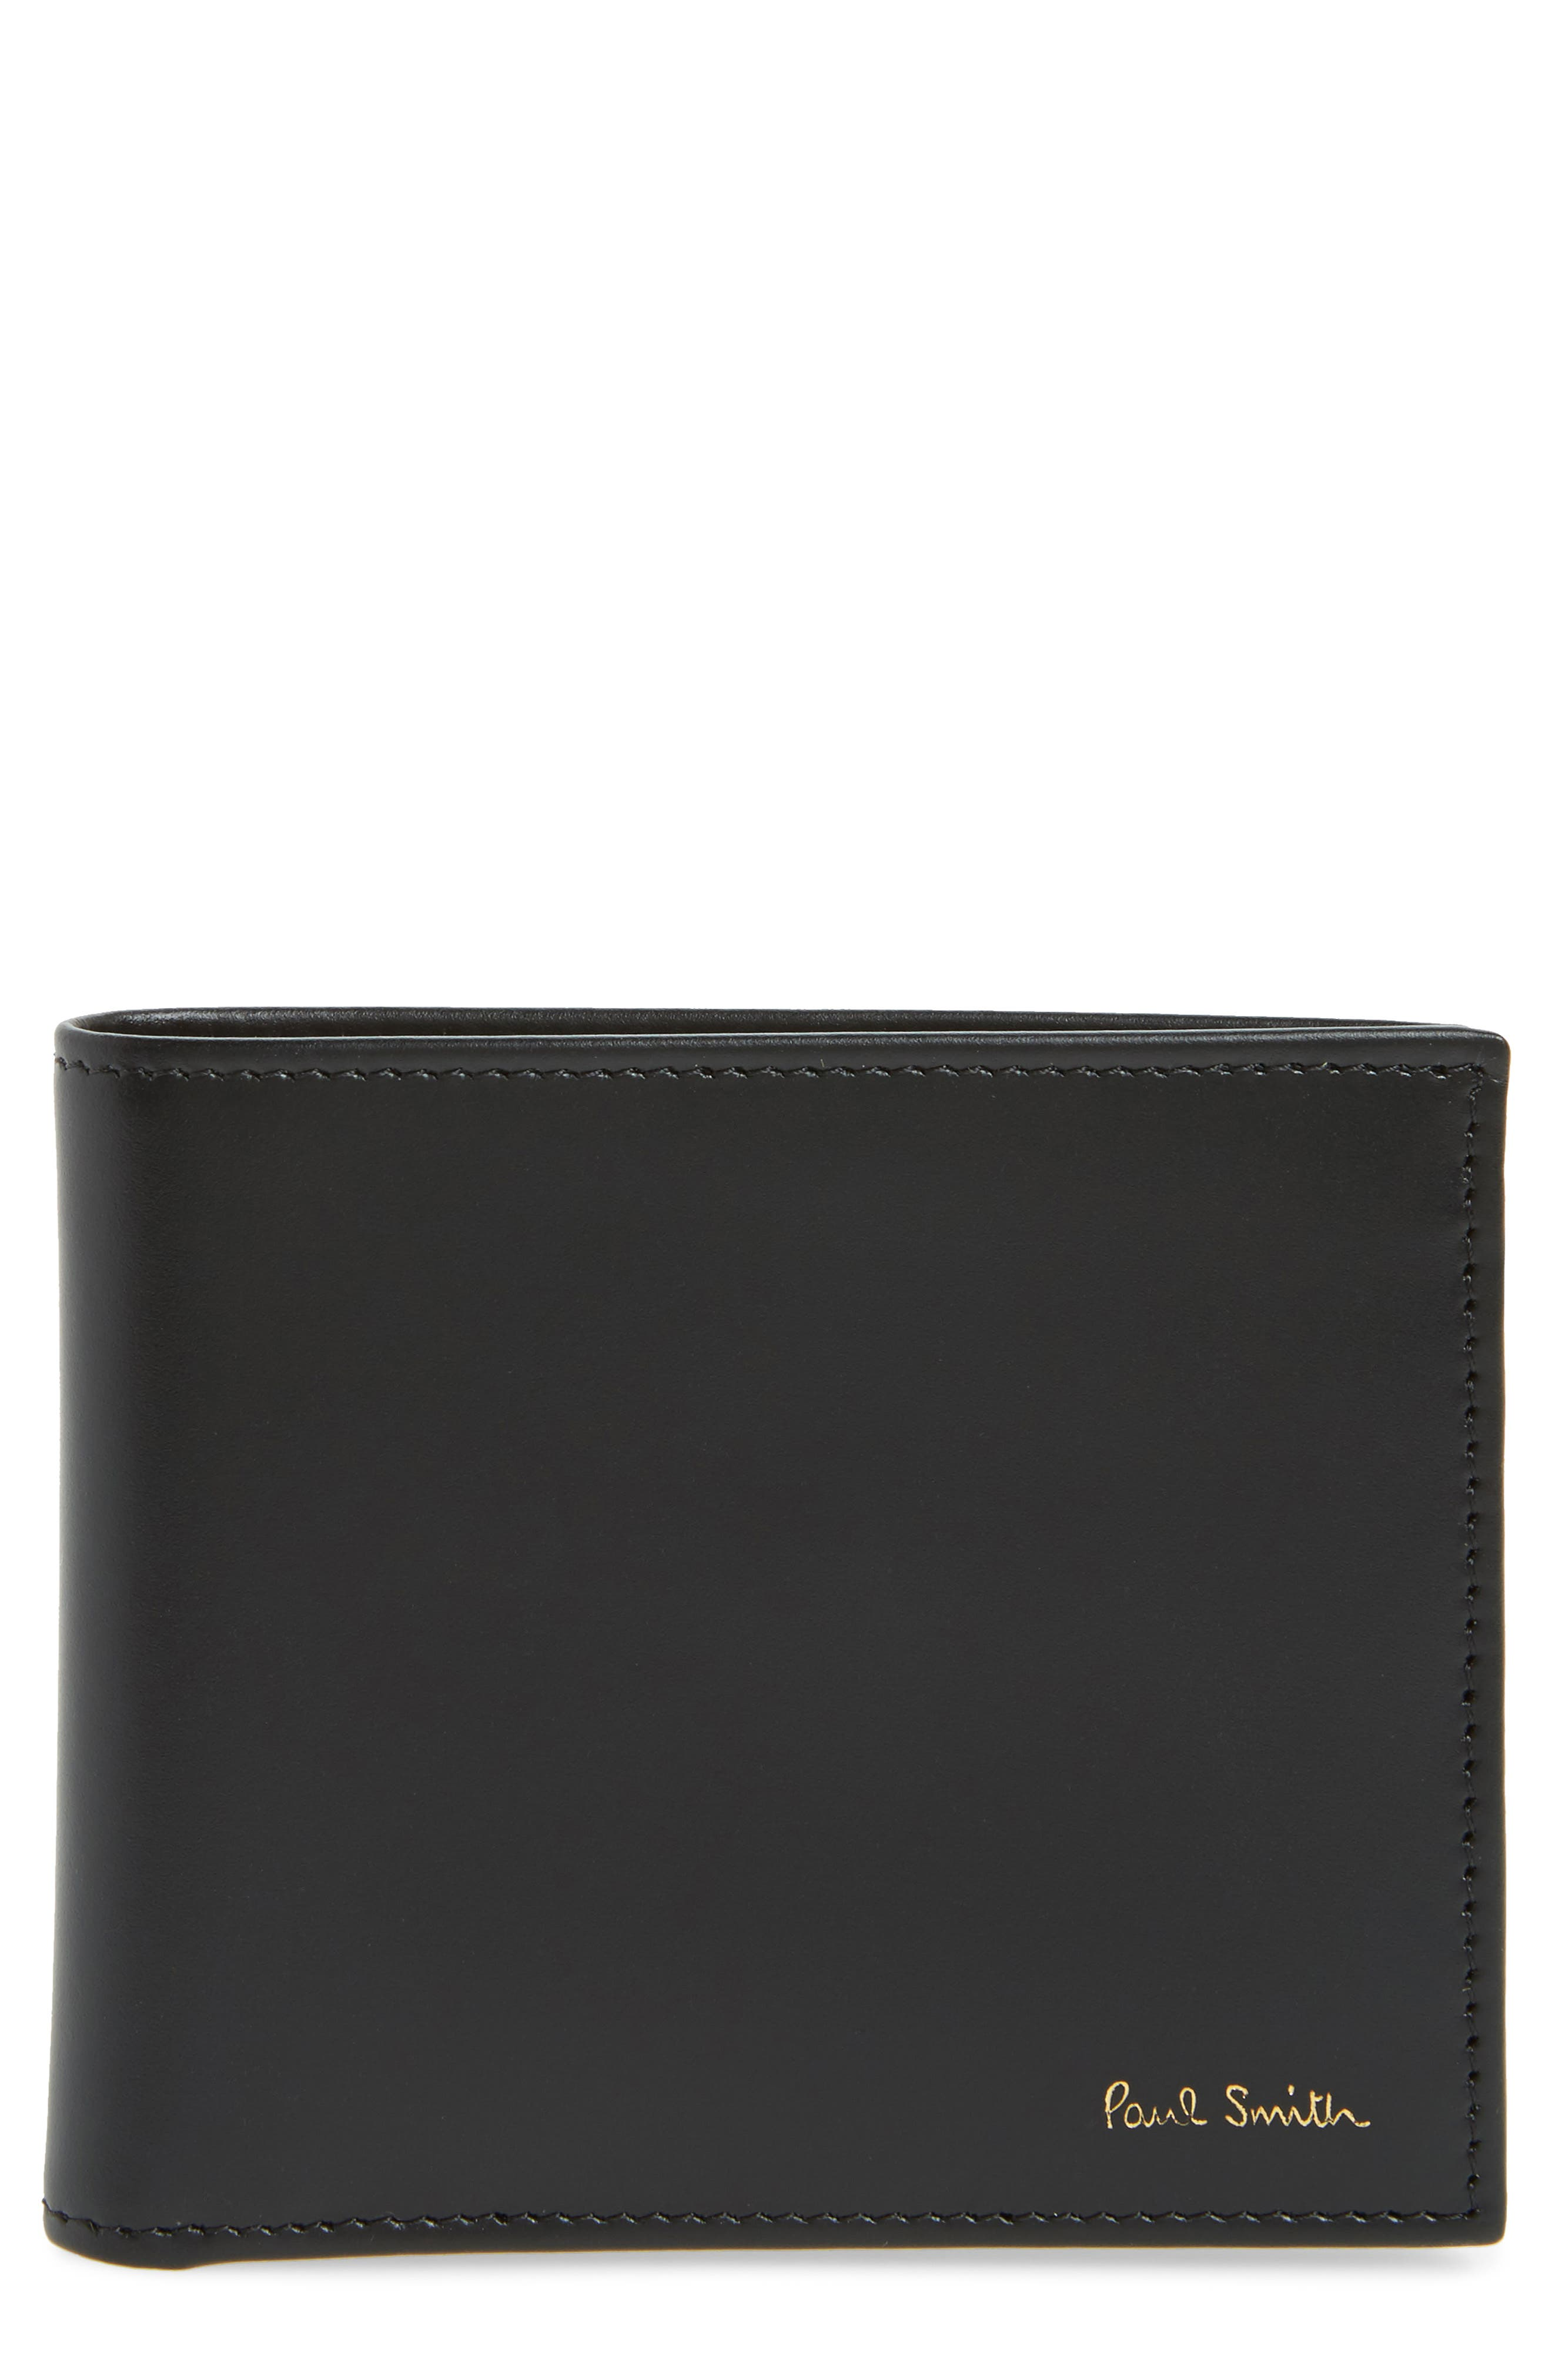 Paul Smith Multistripe Leather Bifold Wallet